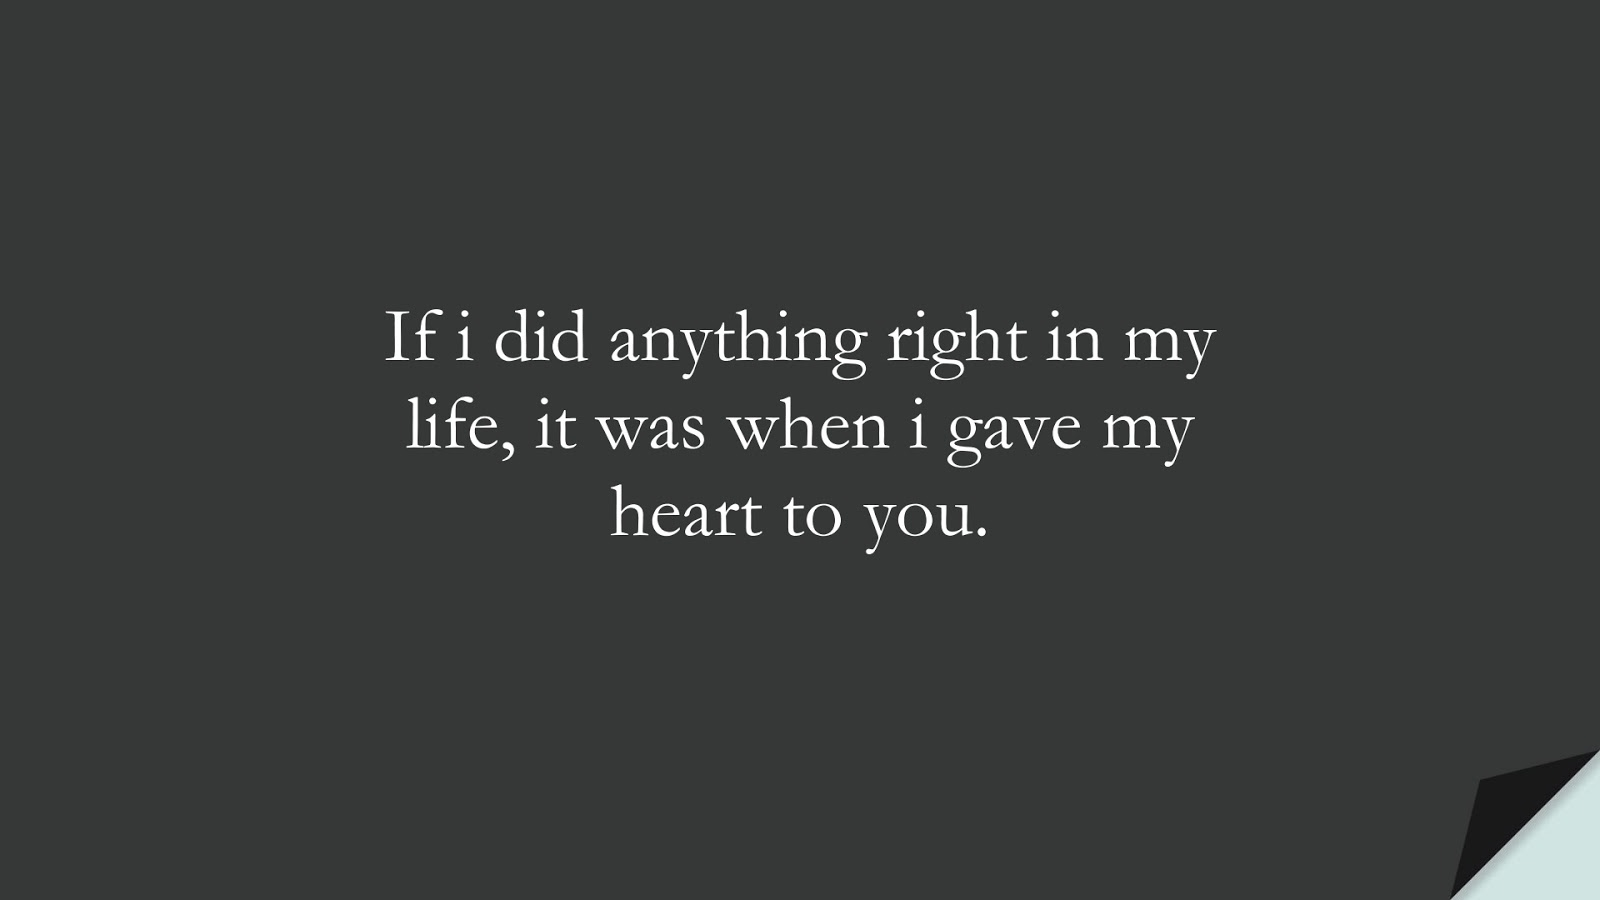 If i did anything right in my life, it was when i gave my heart to you.FALSE